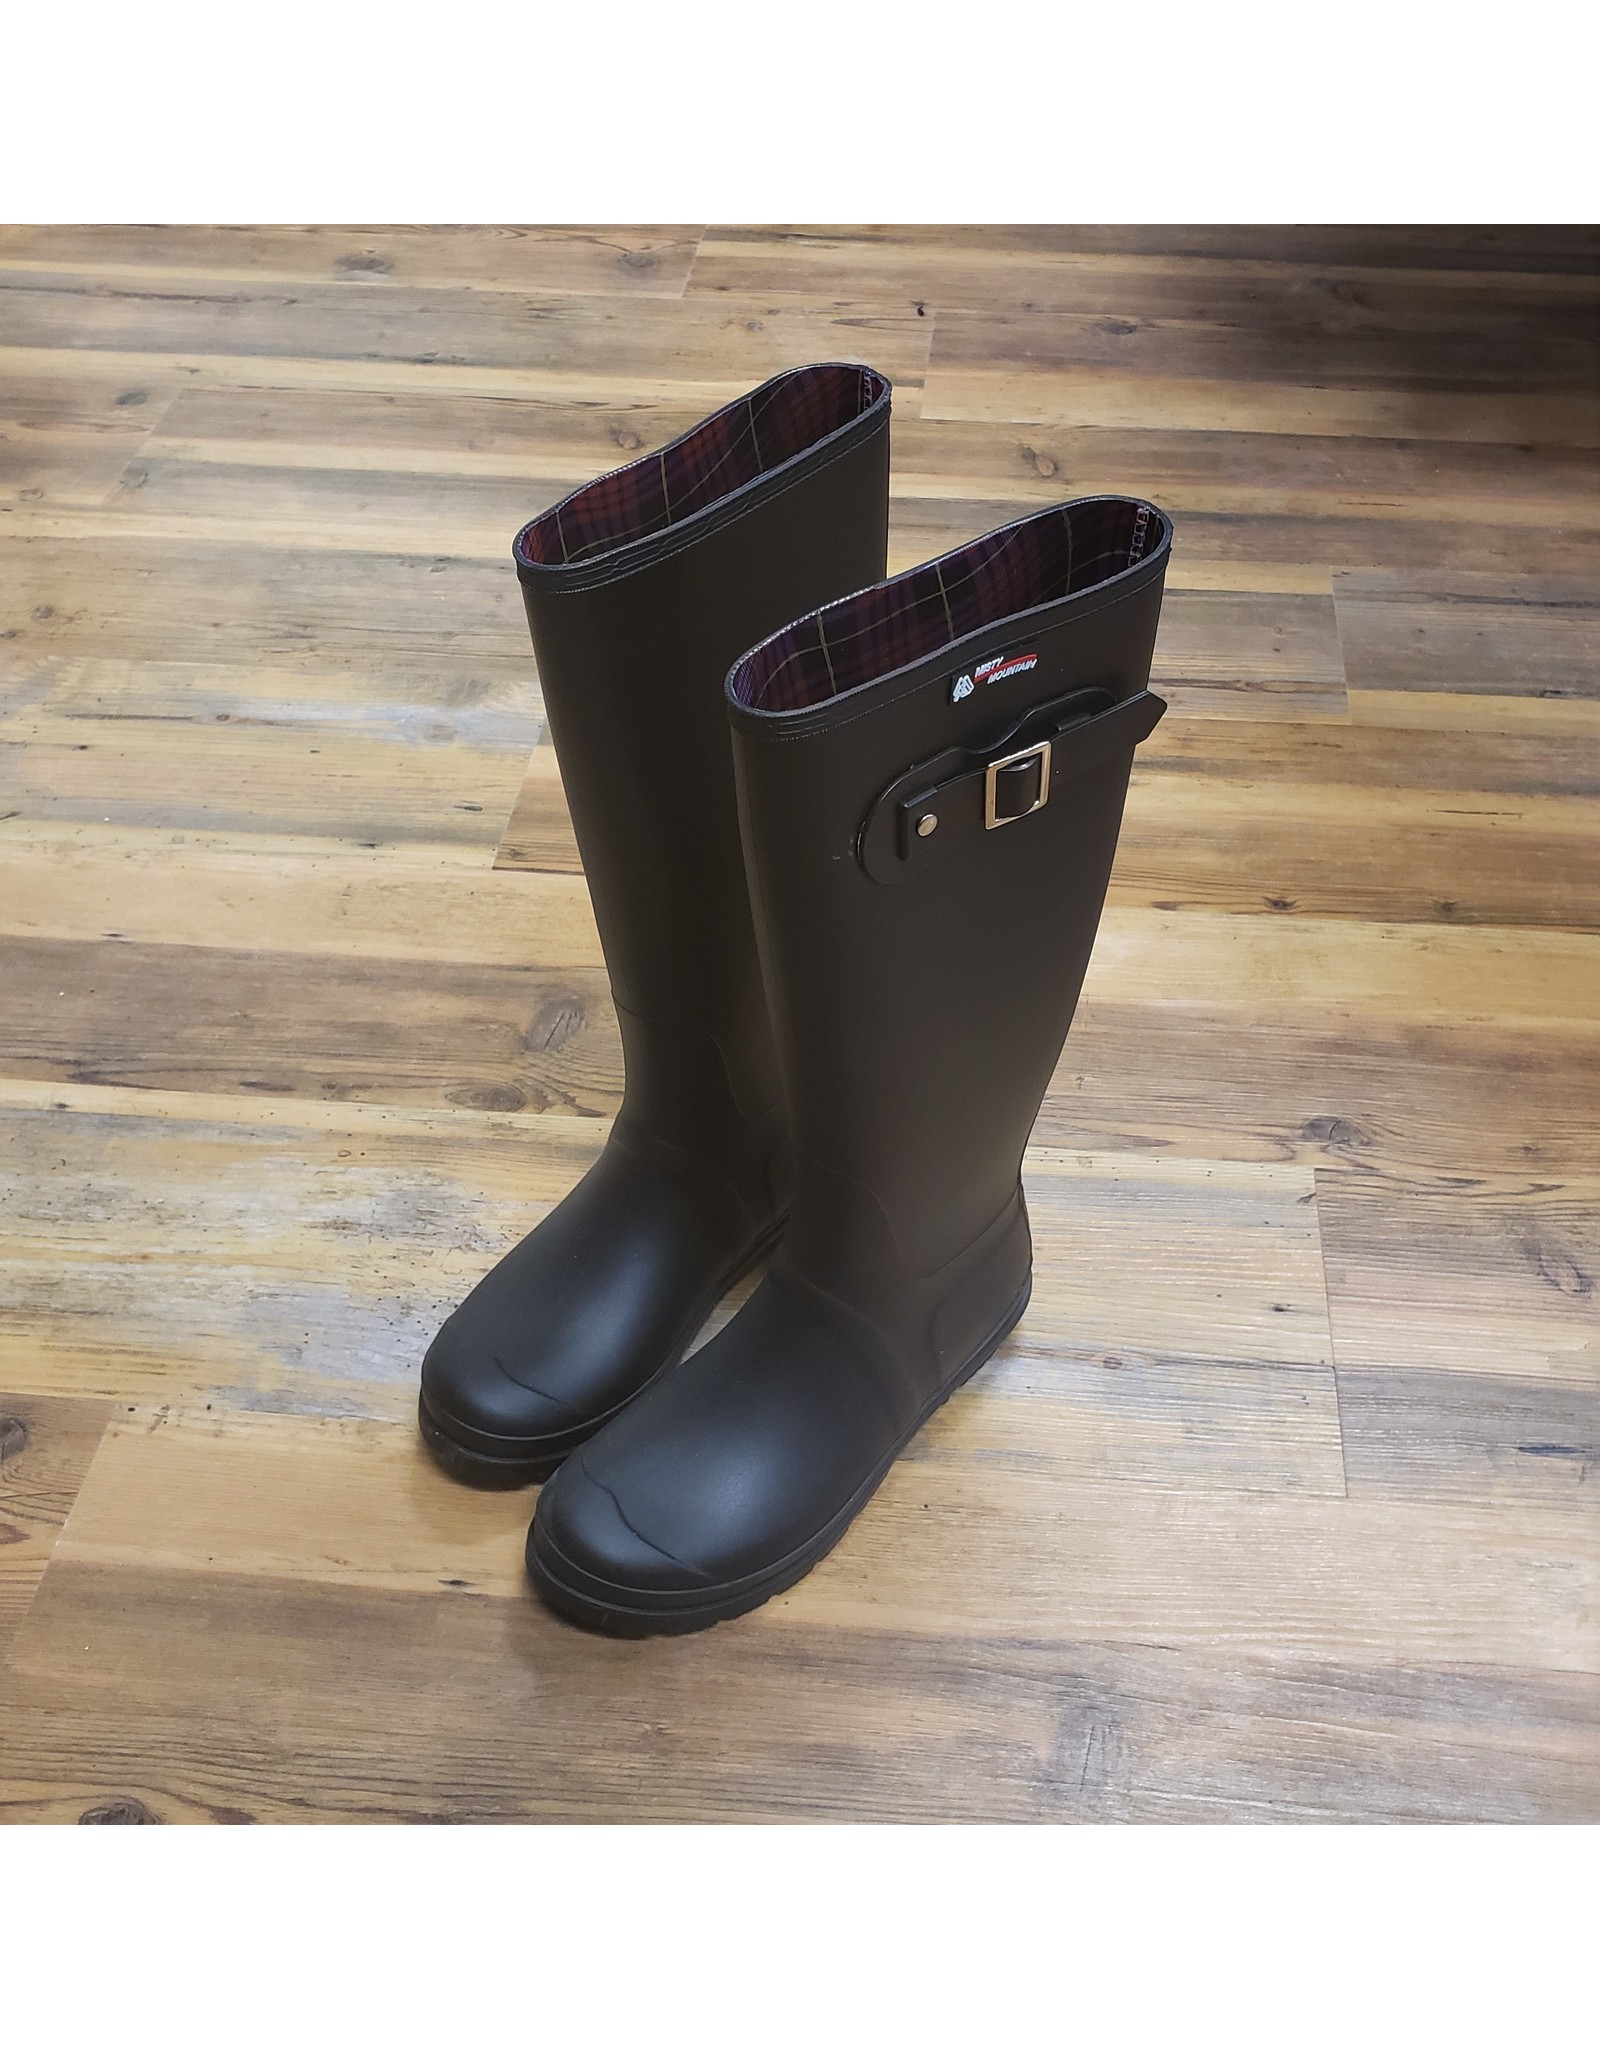 MISTY MOUNTAIN BALMORAL RAIN BOOTS